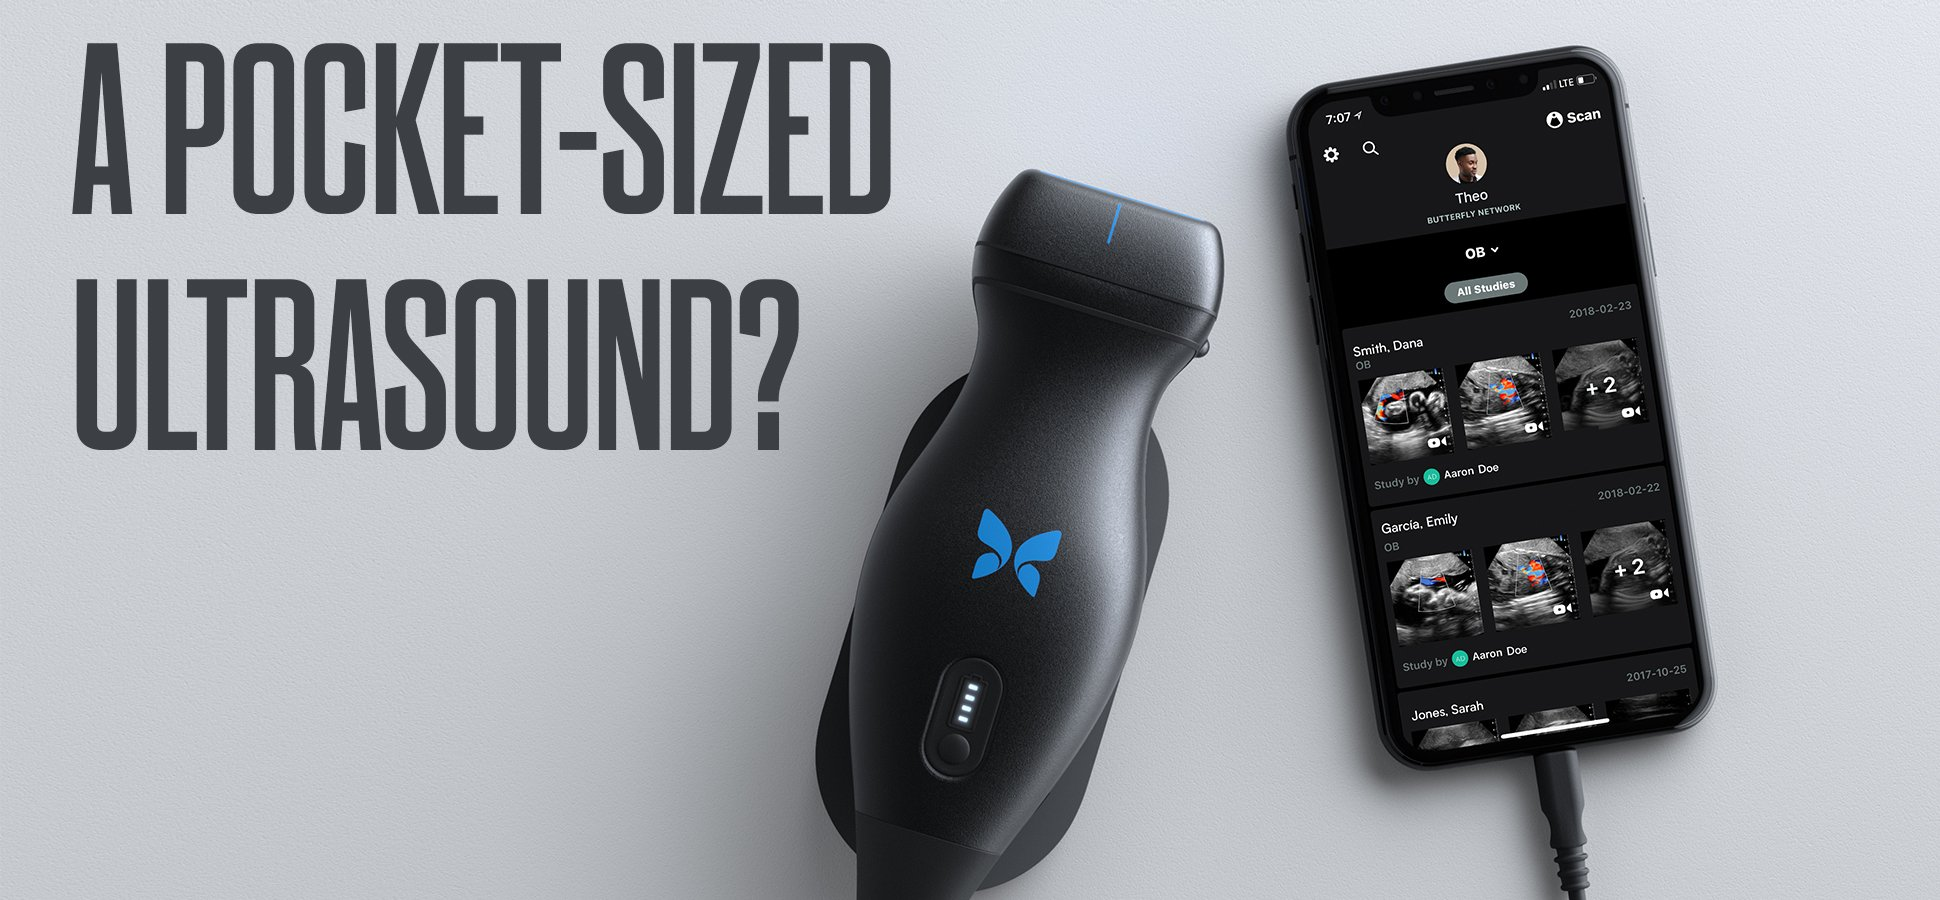 This Tiny $2,000 Ultrasound Will Make It a Lot Easier to Detect Cancer, Prevent Heart Attacks, and More